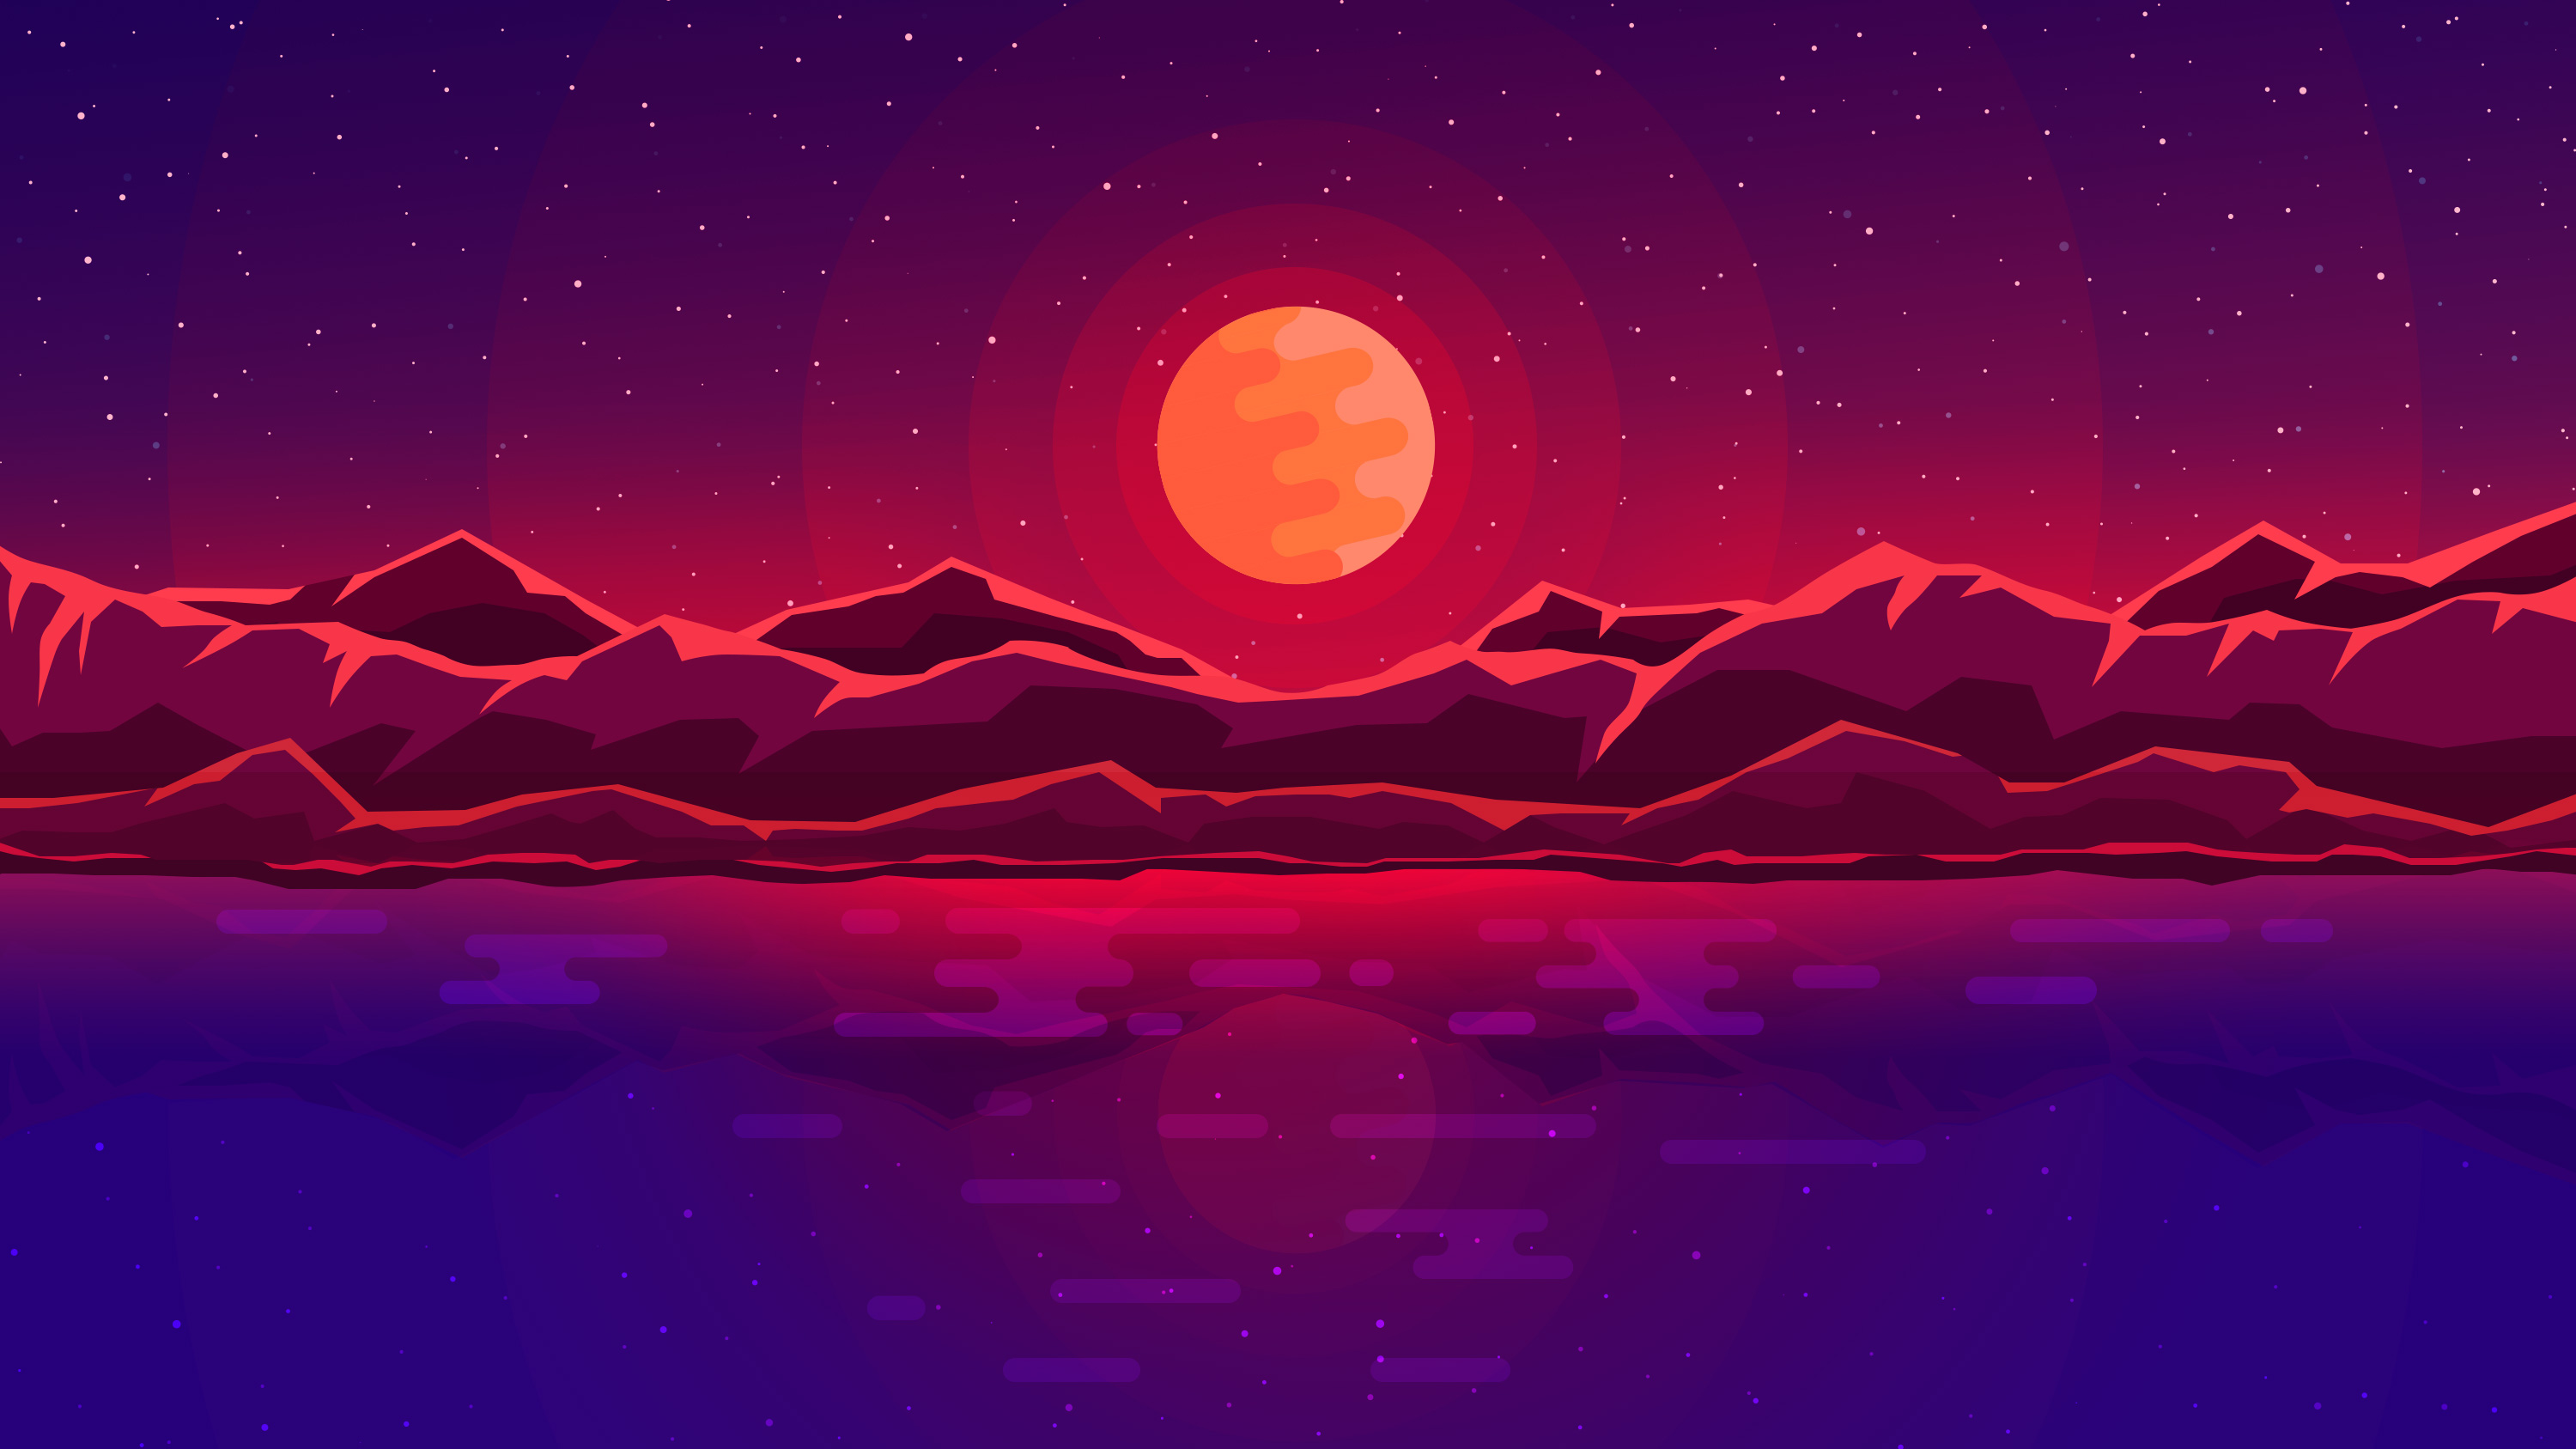 Moon Rays Red Space Sky Abstract Mountains HD Artist 4k